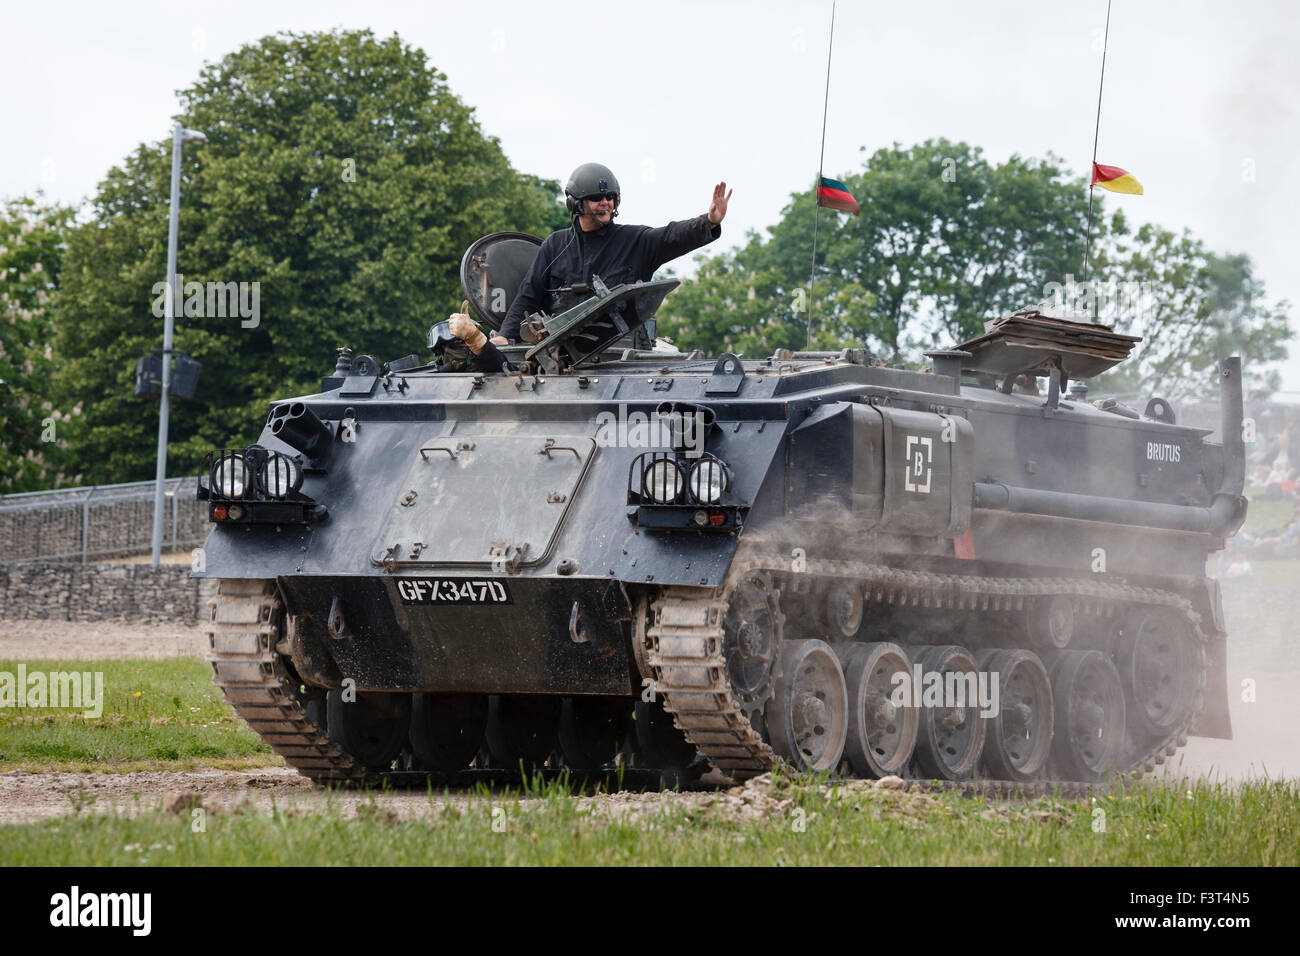 Warrior APC (armoured personnel carrier), The Tank Museum, Bovington, Dorset - Stock Image